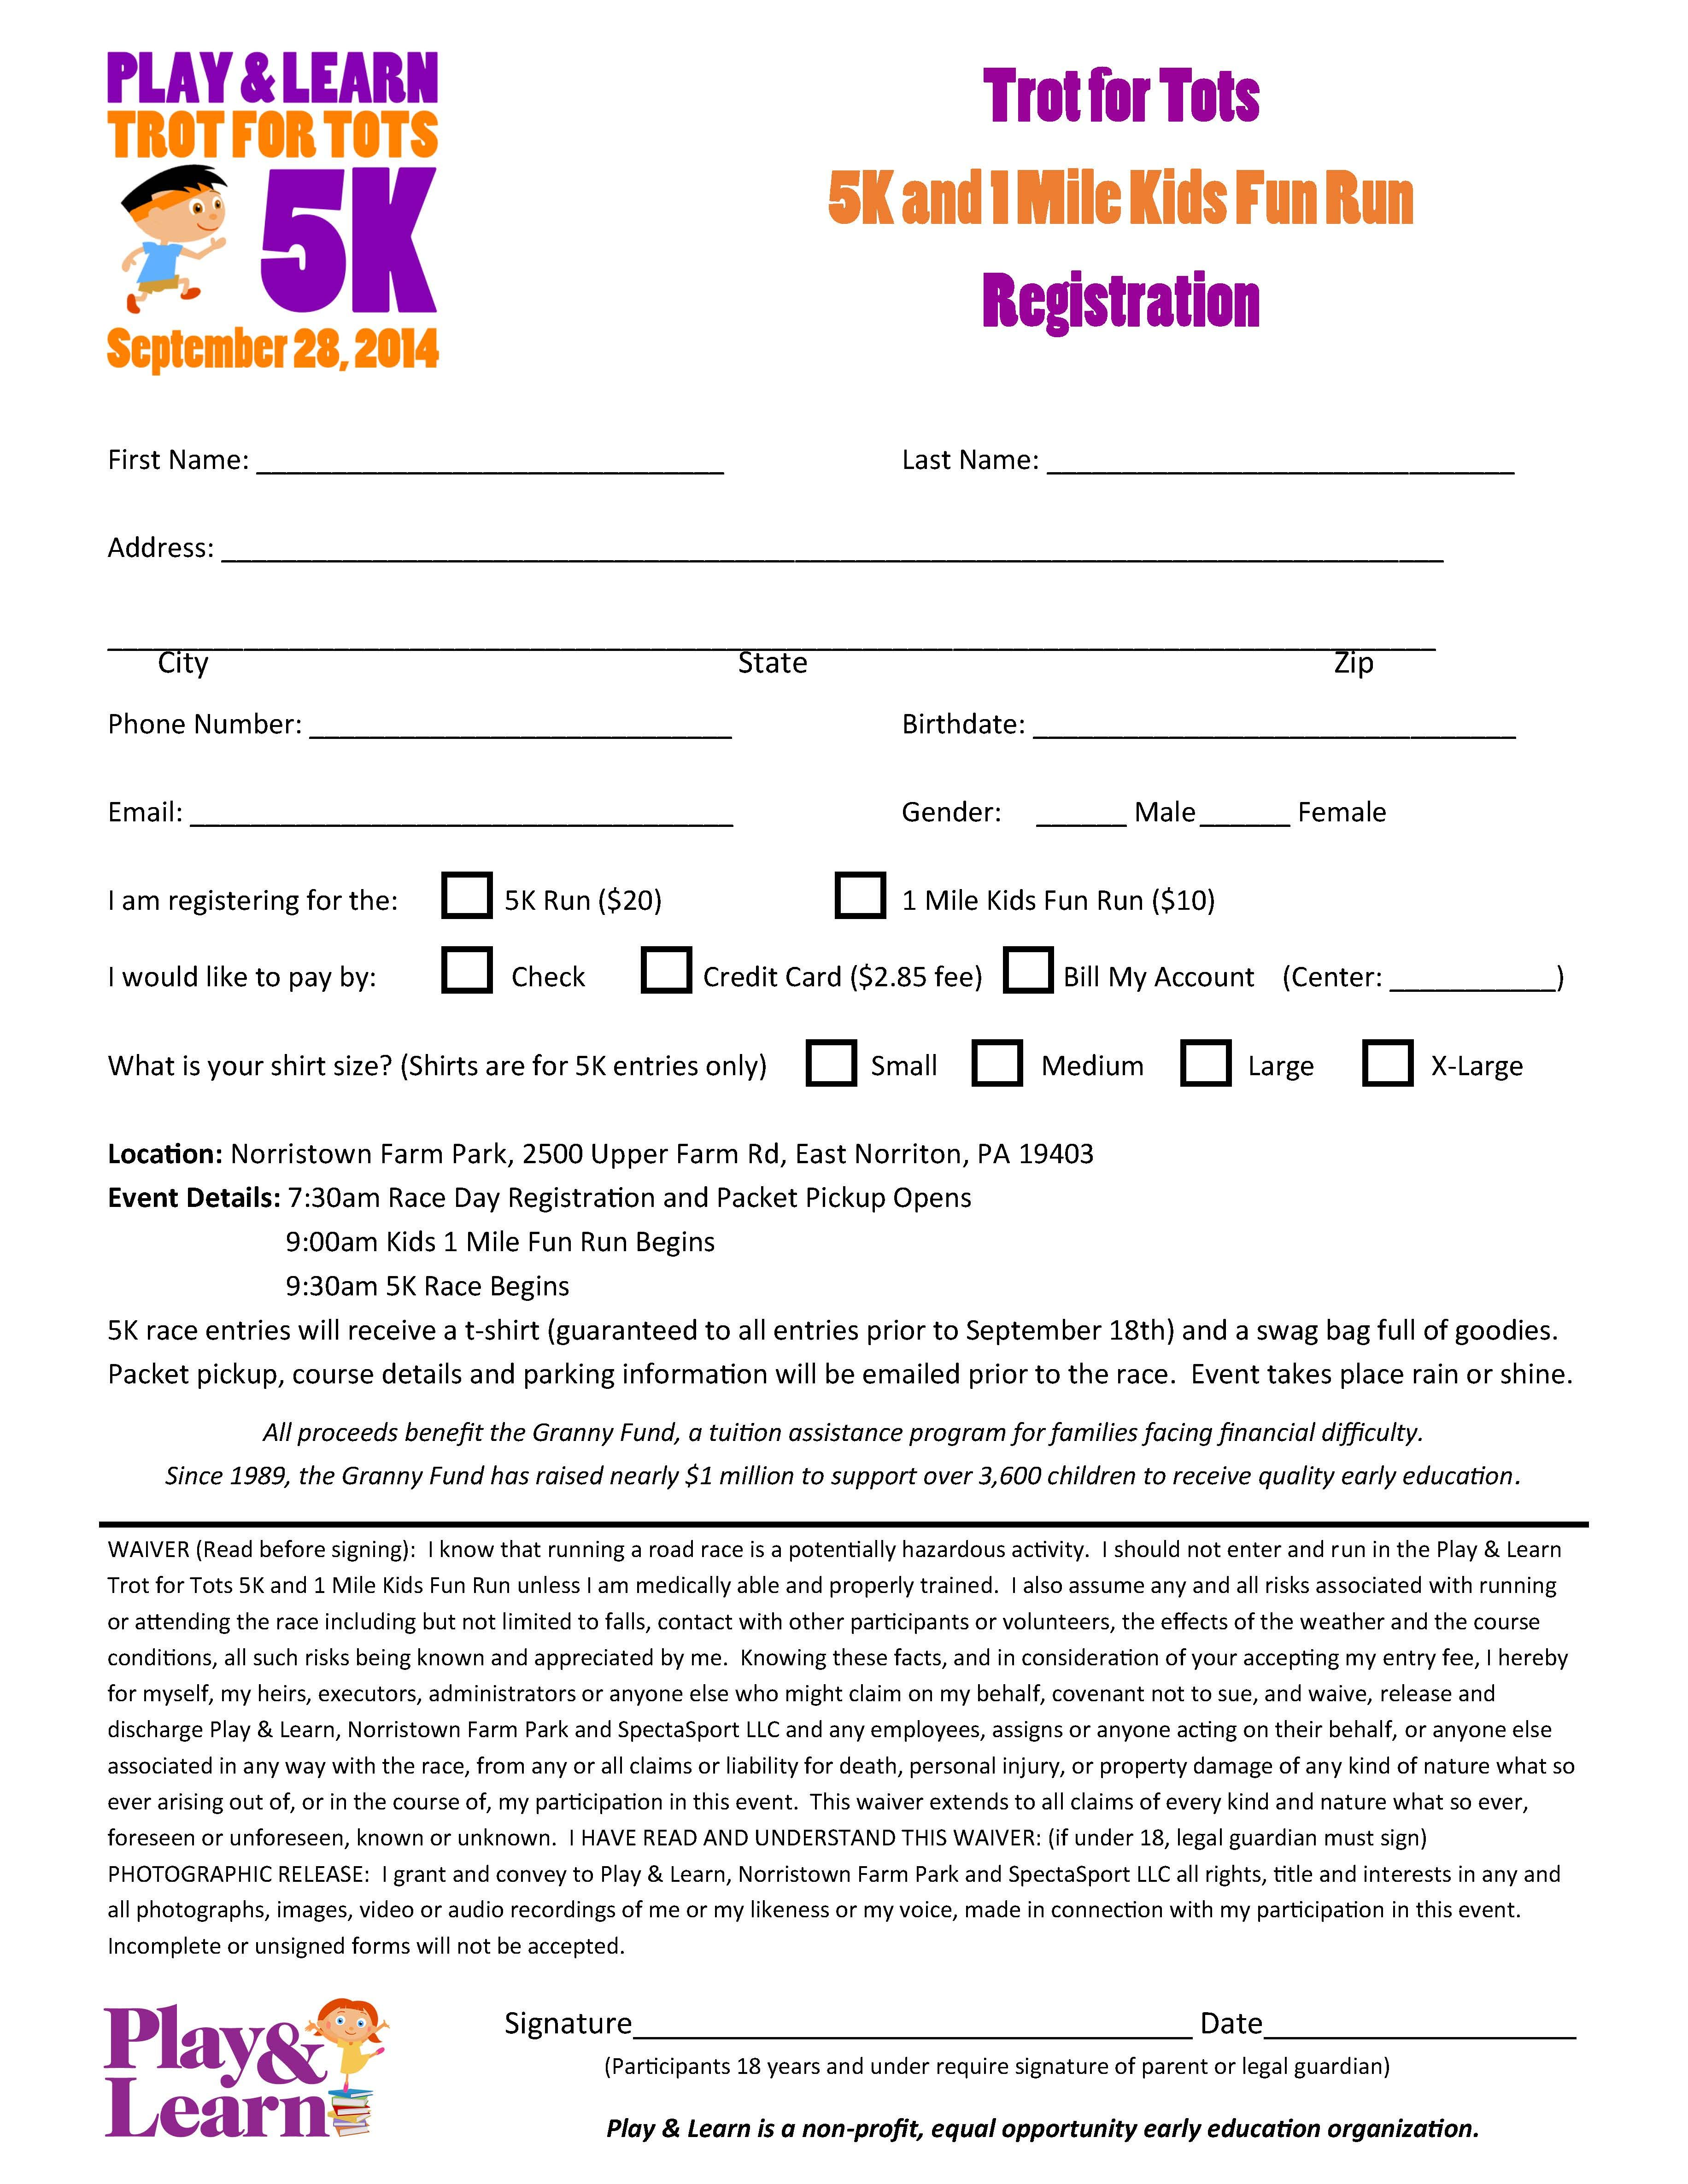 Registration Form for Play & Learns' 5k and Kids Fun Run at the ...